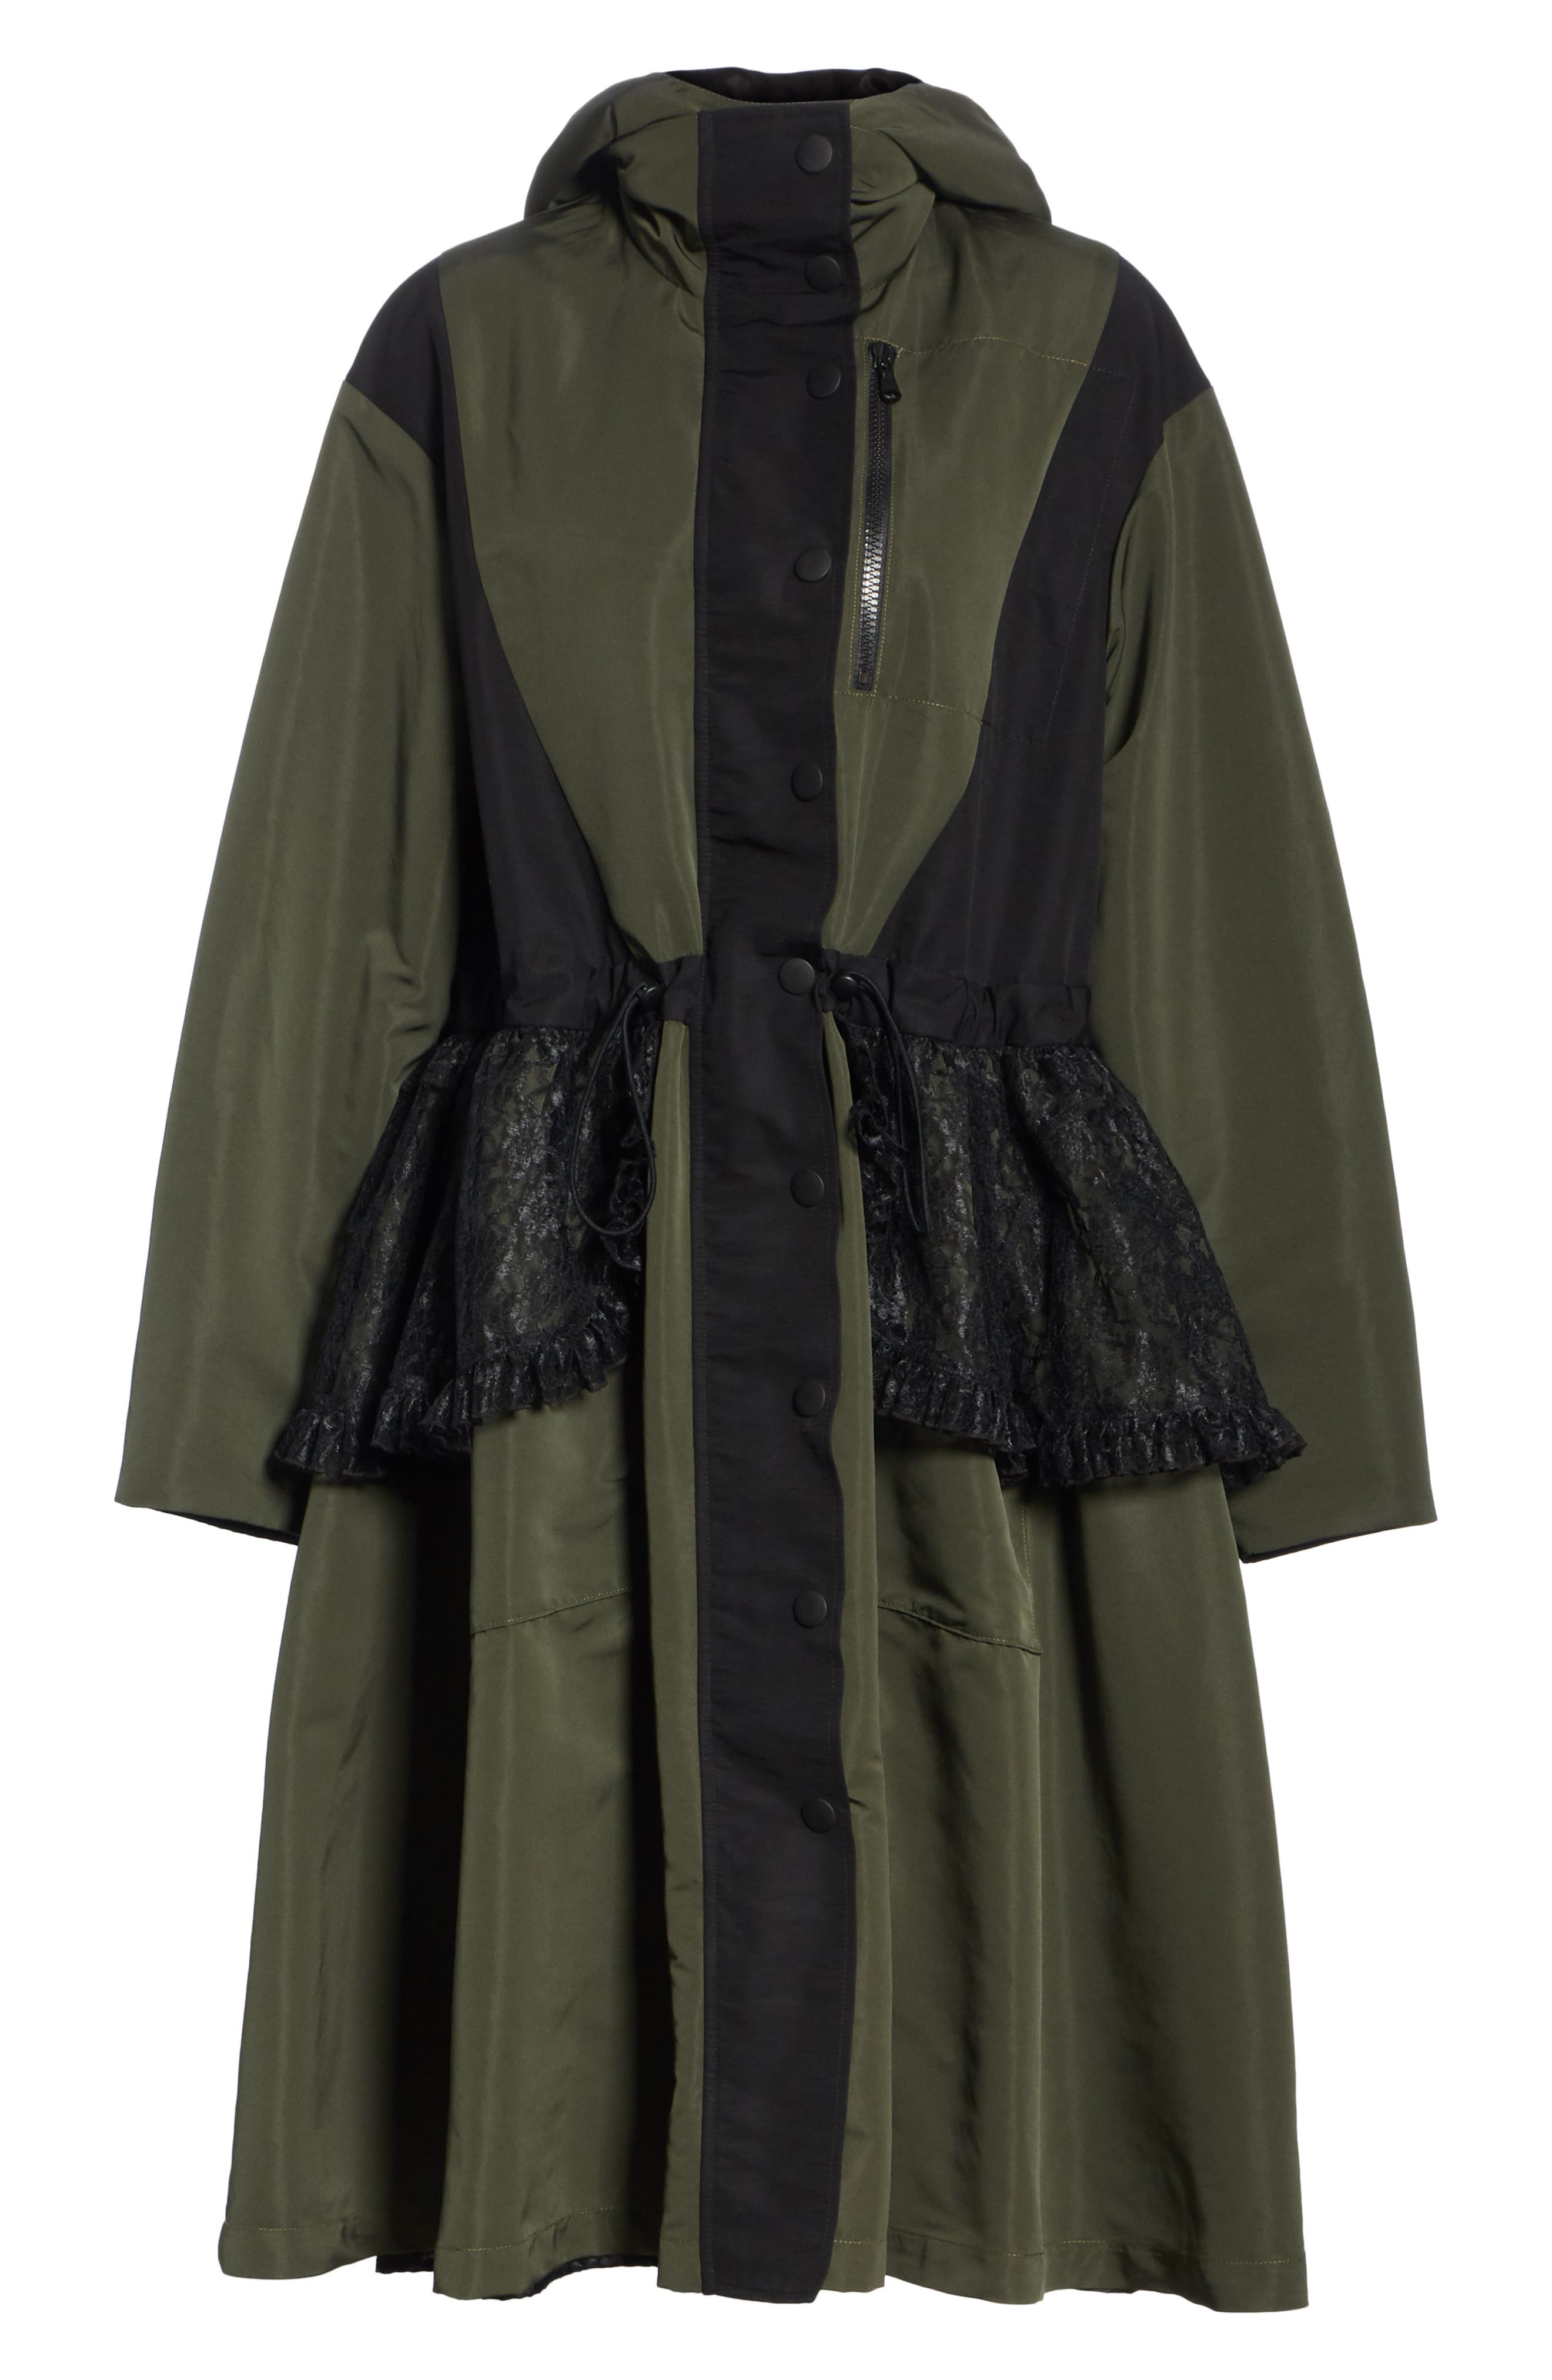 Lace Overlay Hooded Coat,                             Alternate thumbnail 8, color,                             OLIVE BLACK